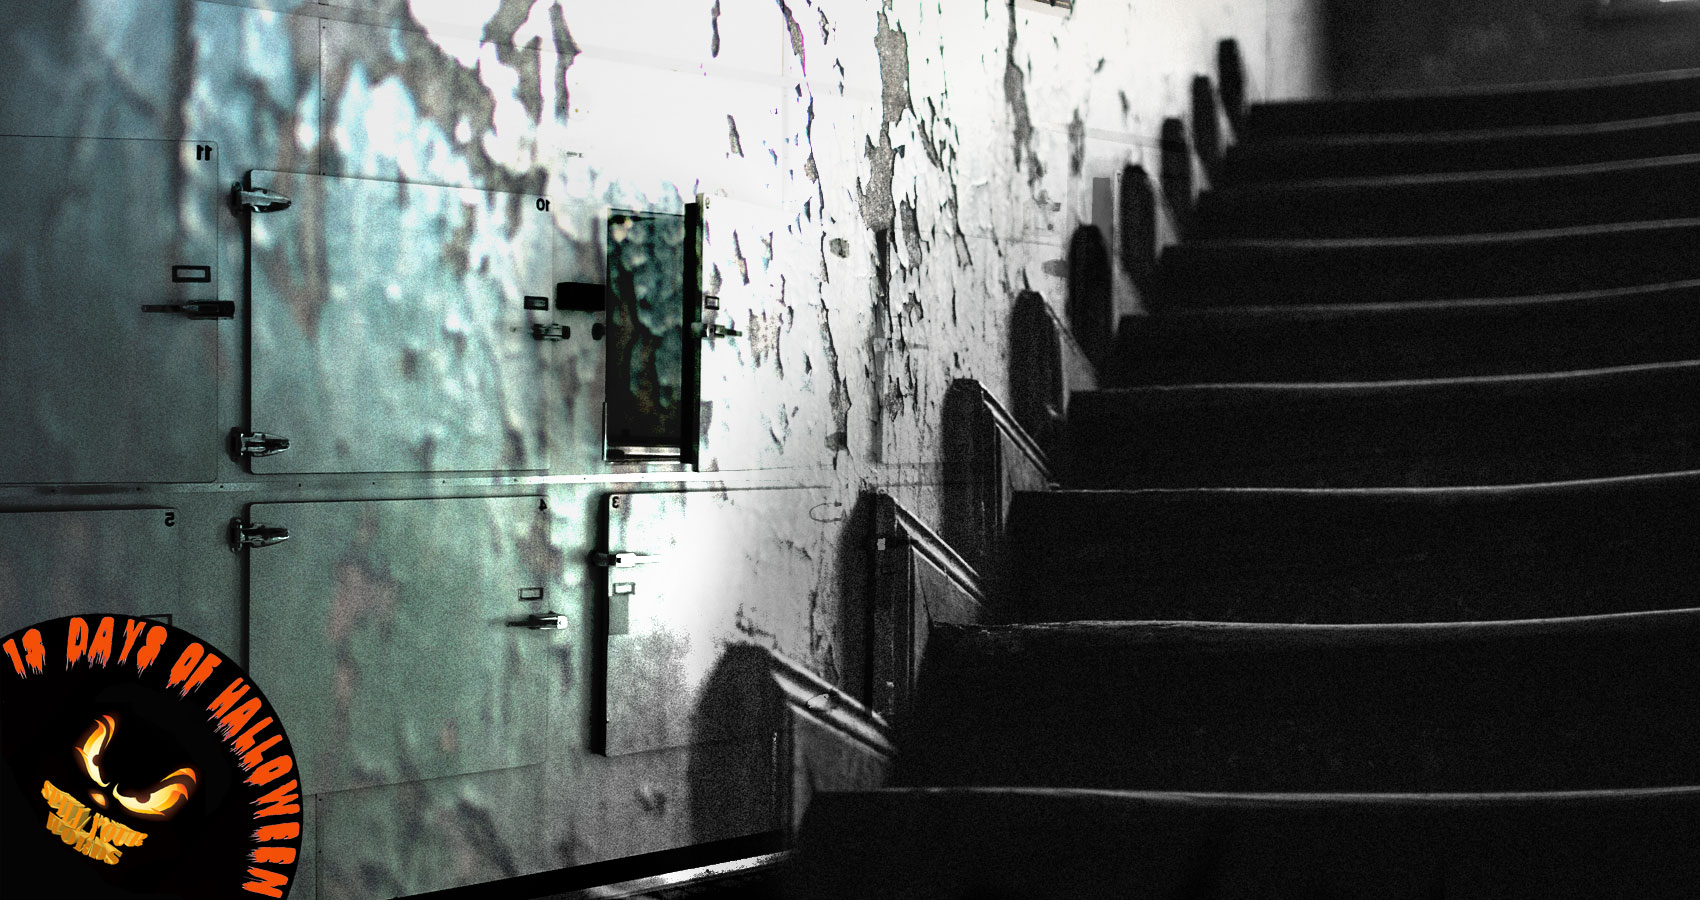 Bodies In The Basement, short story written by M. Taggart at Spillwords.com